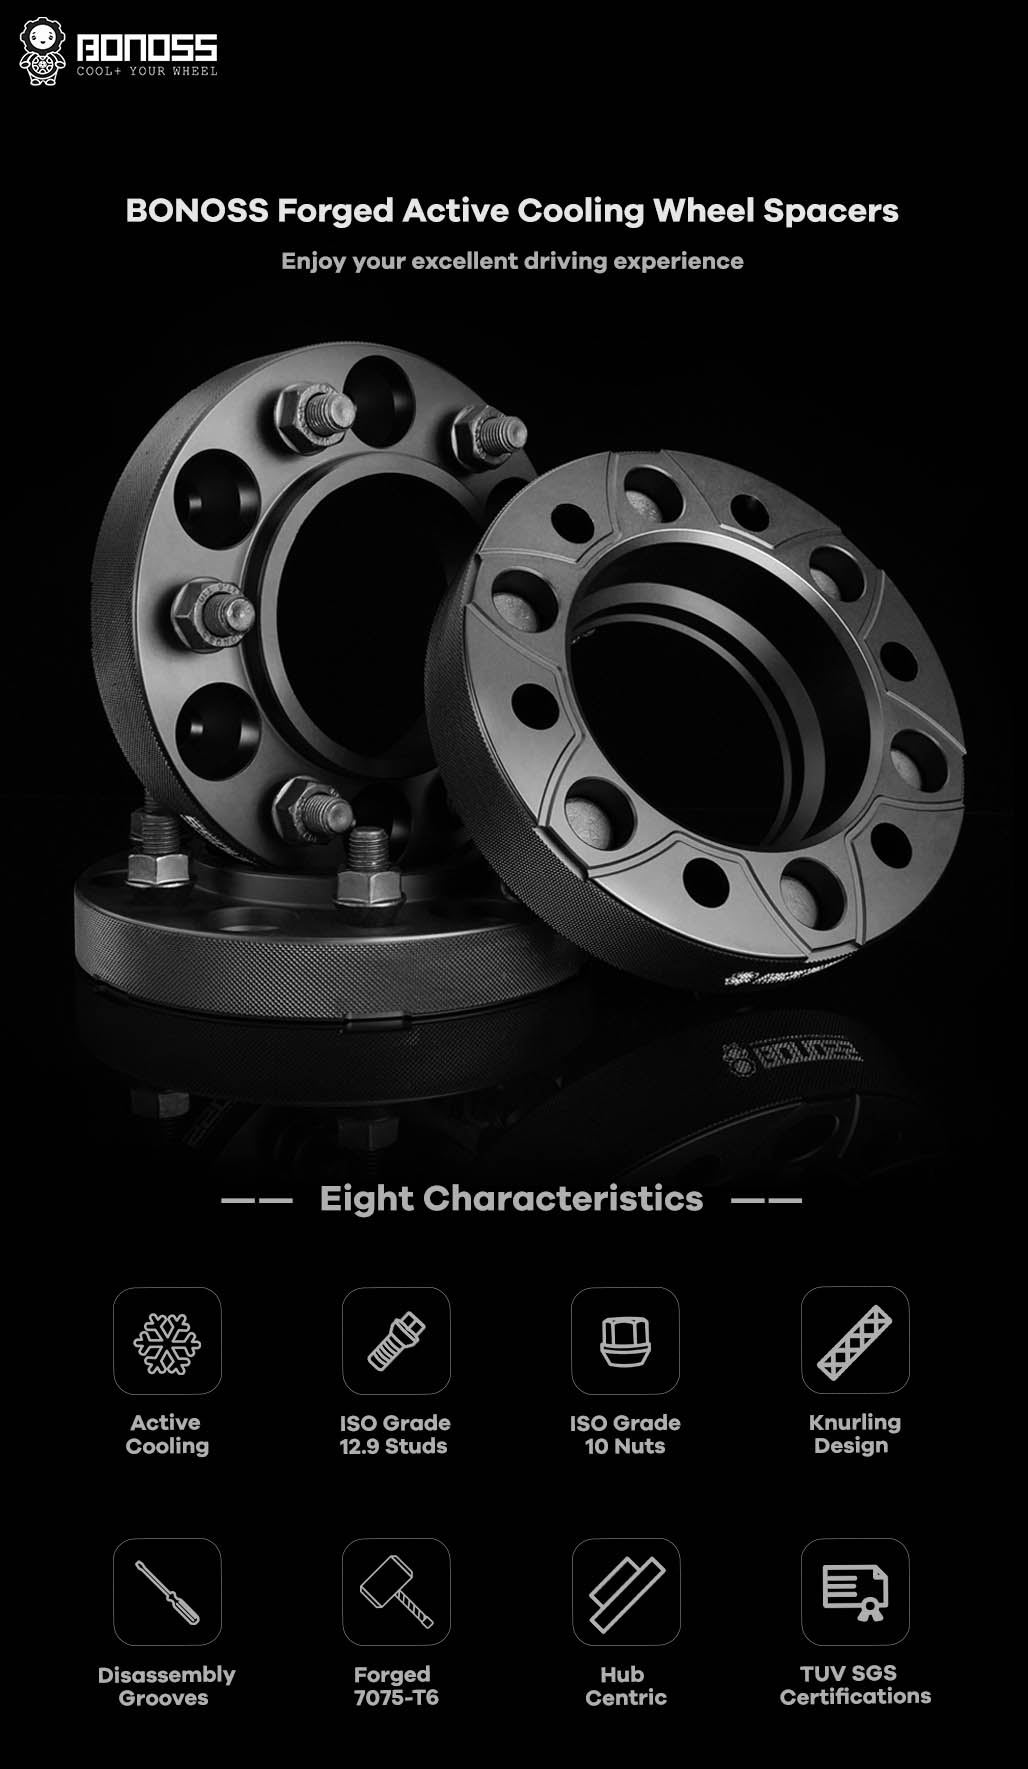 AL7075-T6 BONOSS-forged-active-cooling-wheel-spacer-6X139.7-107.1-M12X1.5-by-lulu-1